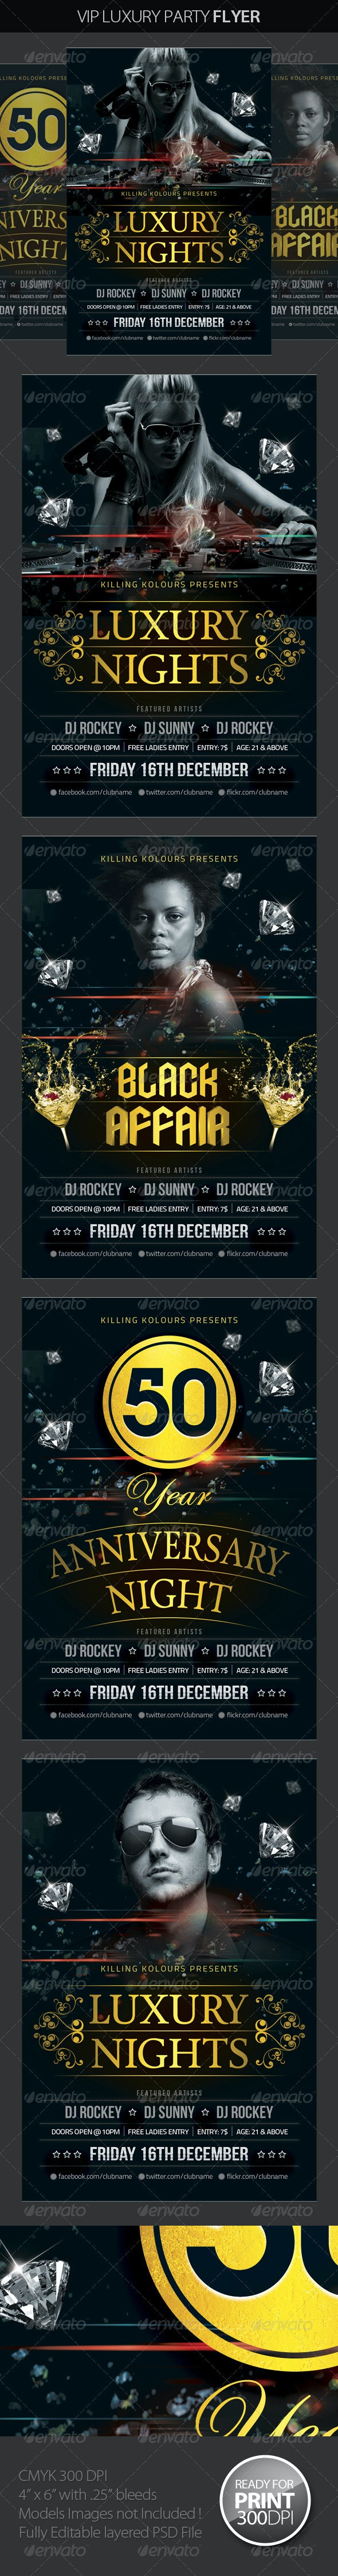 VIP / Luxury Party Flyer - Clubs & Parties Events